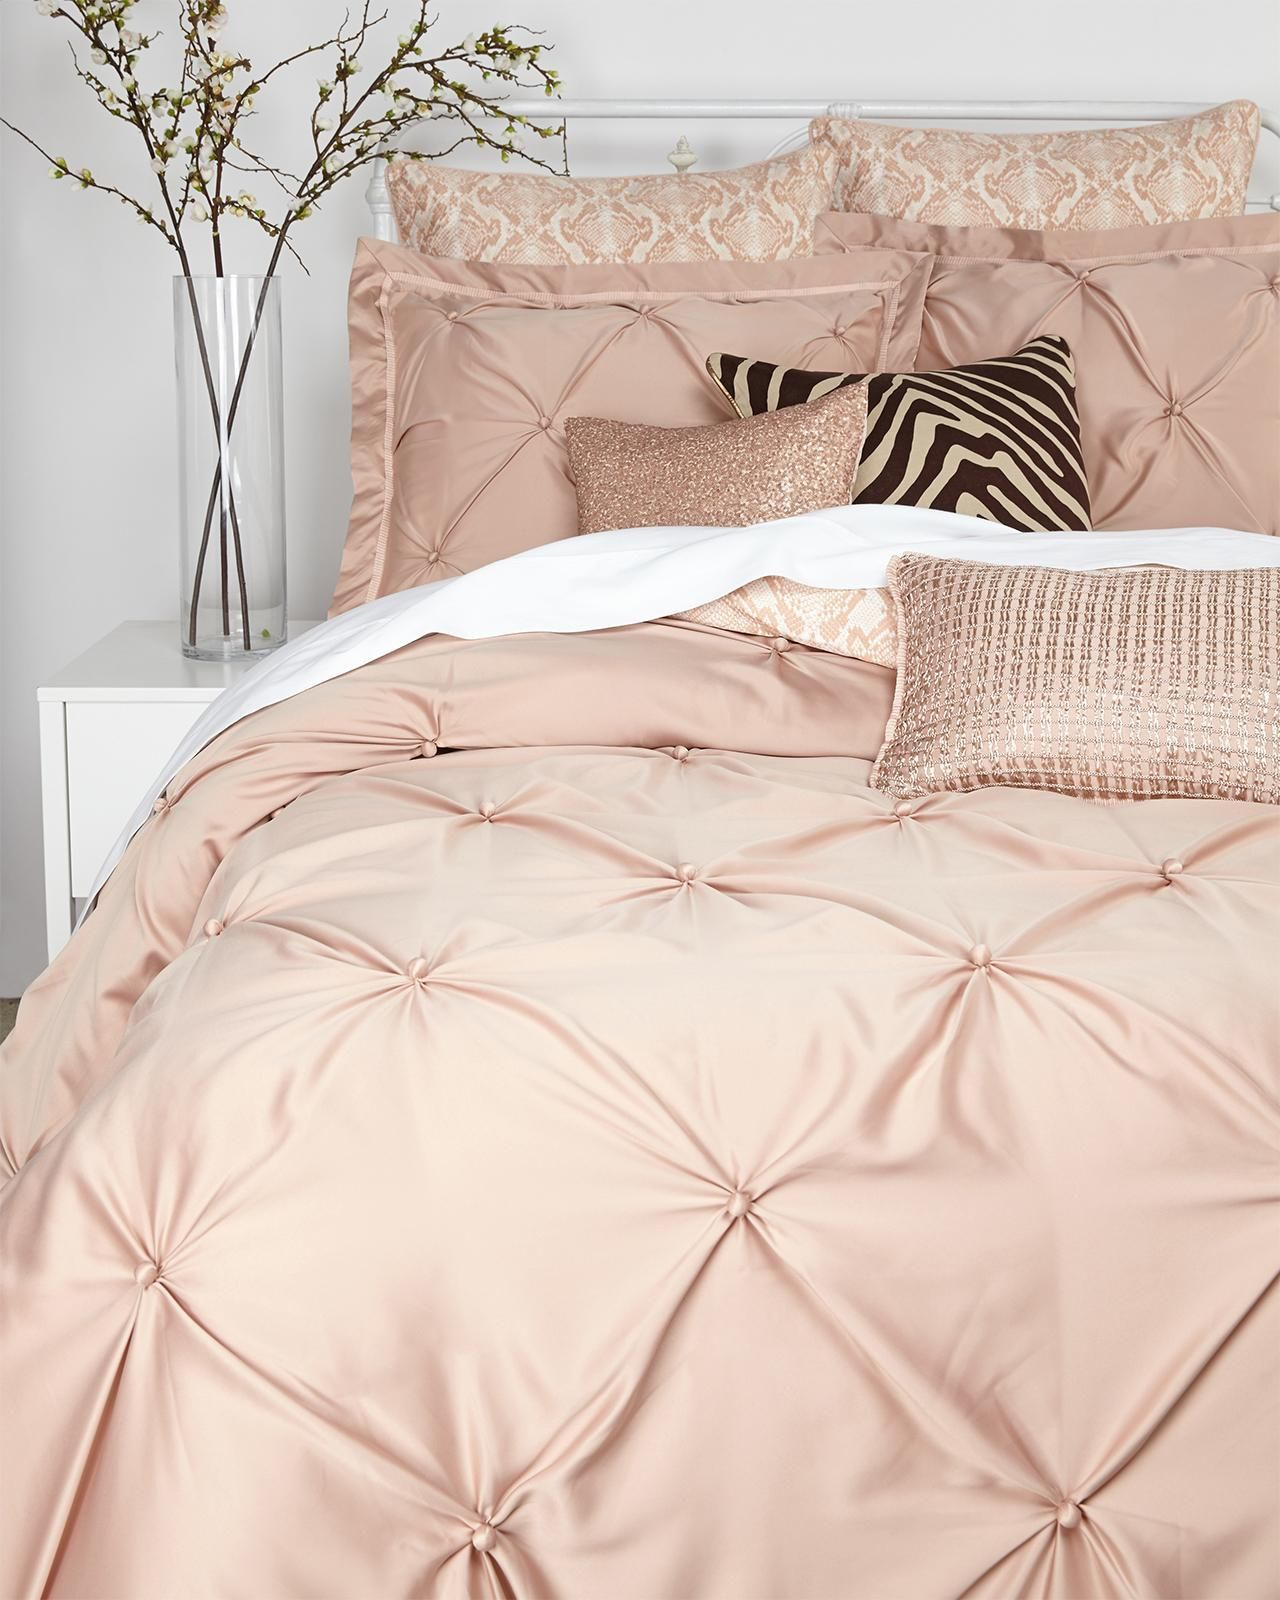 Vince Camuto Rose Gold Queen Comforter Set Gold Bedroom Rose